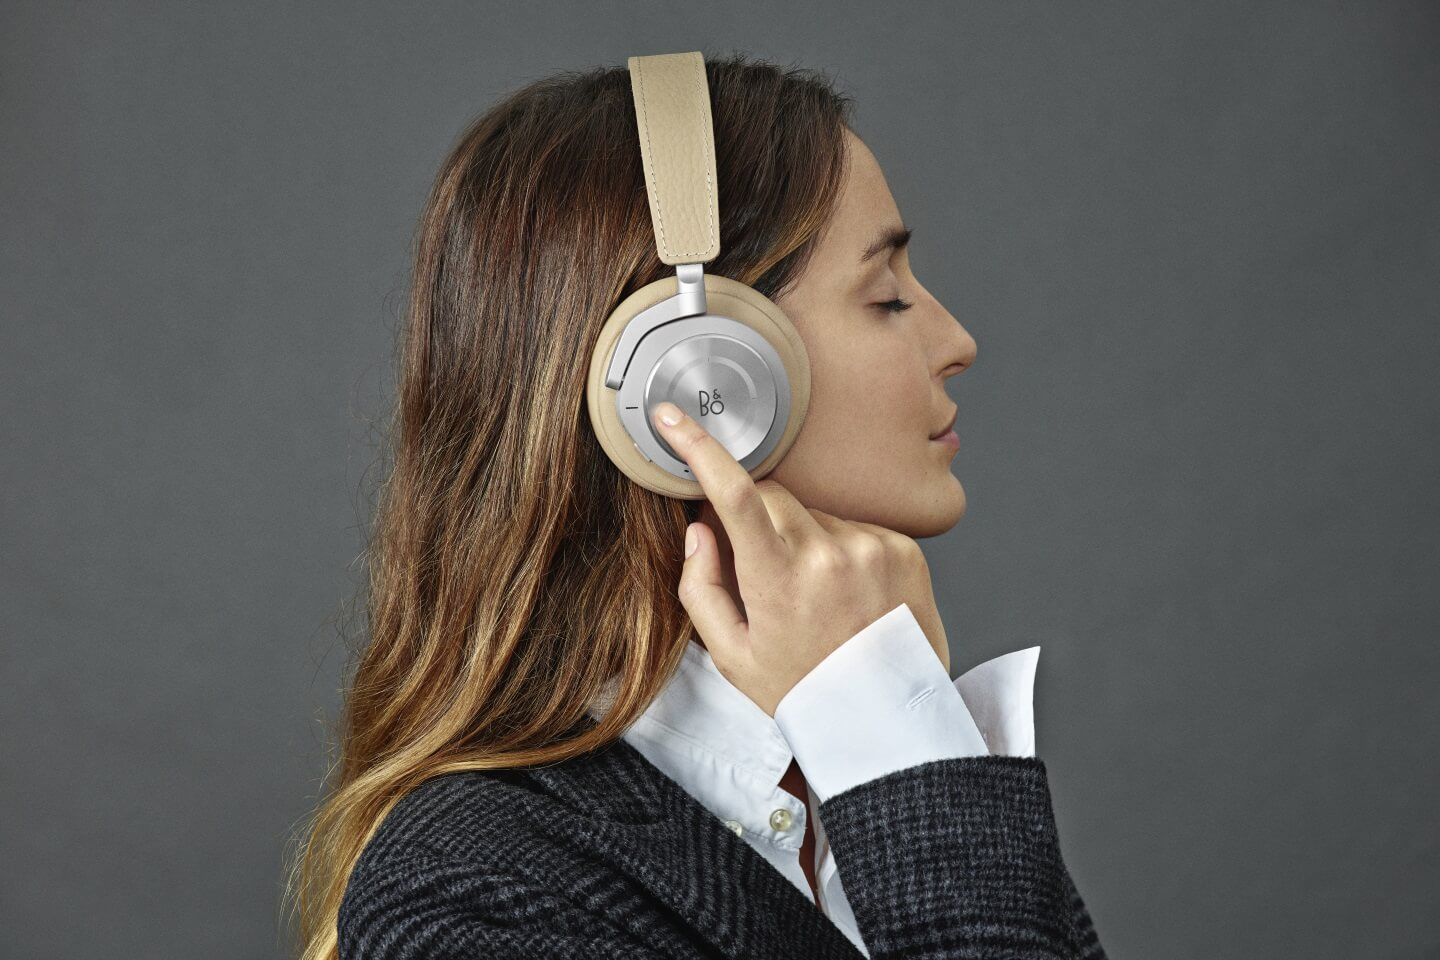 BeoPlay H9i - Travel companion for everyday life